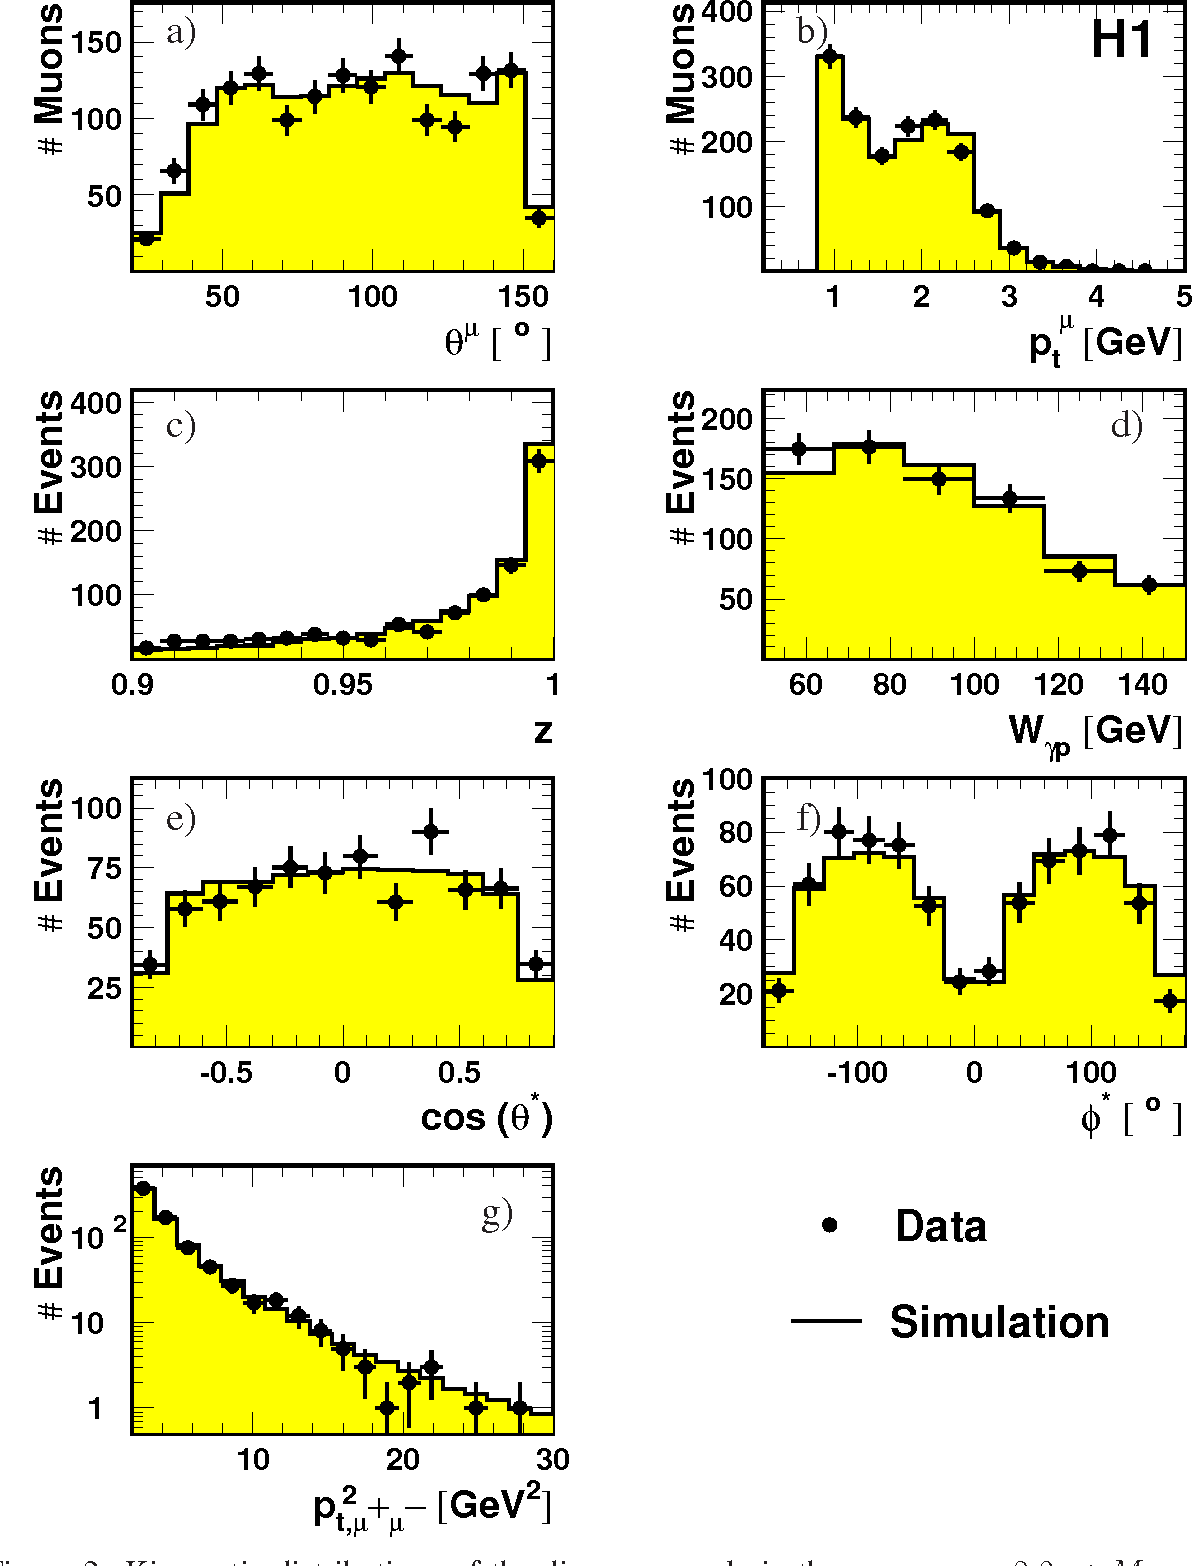 Figure 2: Kinematic distributions of the dimuon sample in the mass range 2.9 < Mµ+µ− < 3.3 GeV. a) The polar angle θµ and b) the transverse momentum pµt of the muon tracks. c) The elasticity z and d) the photon-proton centre-of-mass energy Wγp. e) The distribution of the cosine of the polar angle and f) the azimuthal distribution of the positively charged decay muon in the helicity frame. g) The distribution of the squared dimuon transverse momentum.